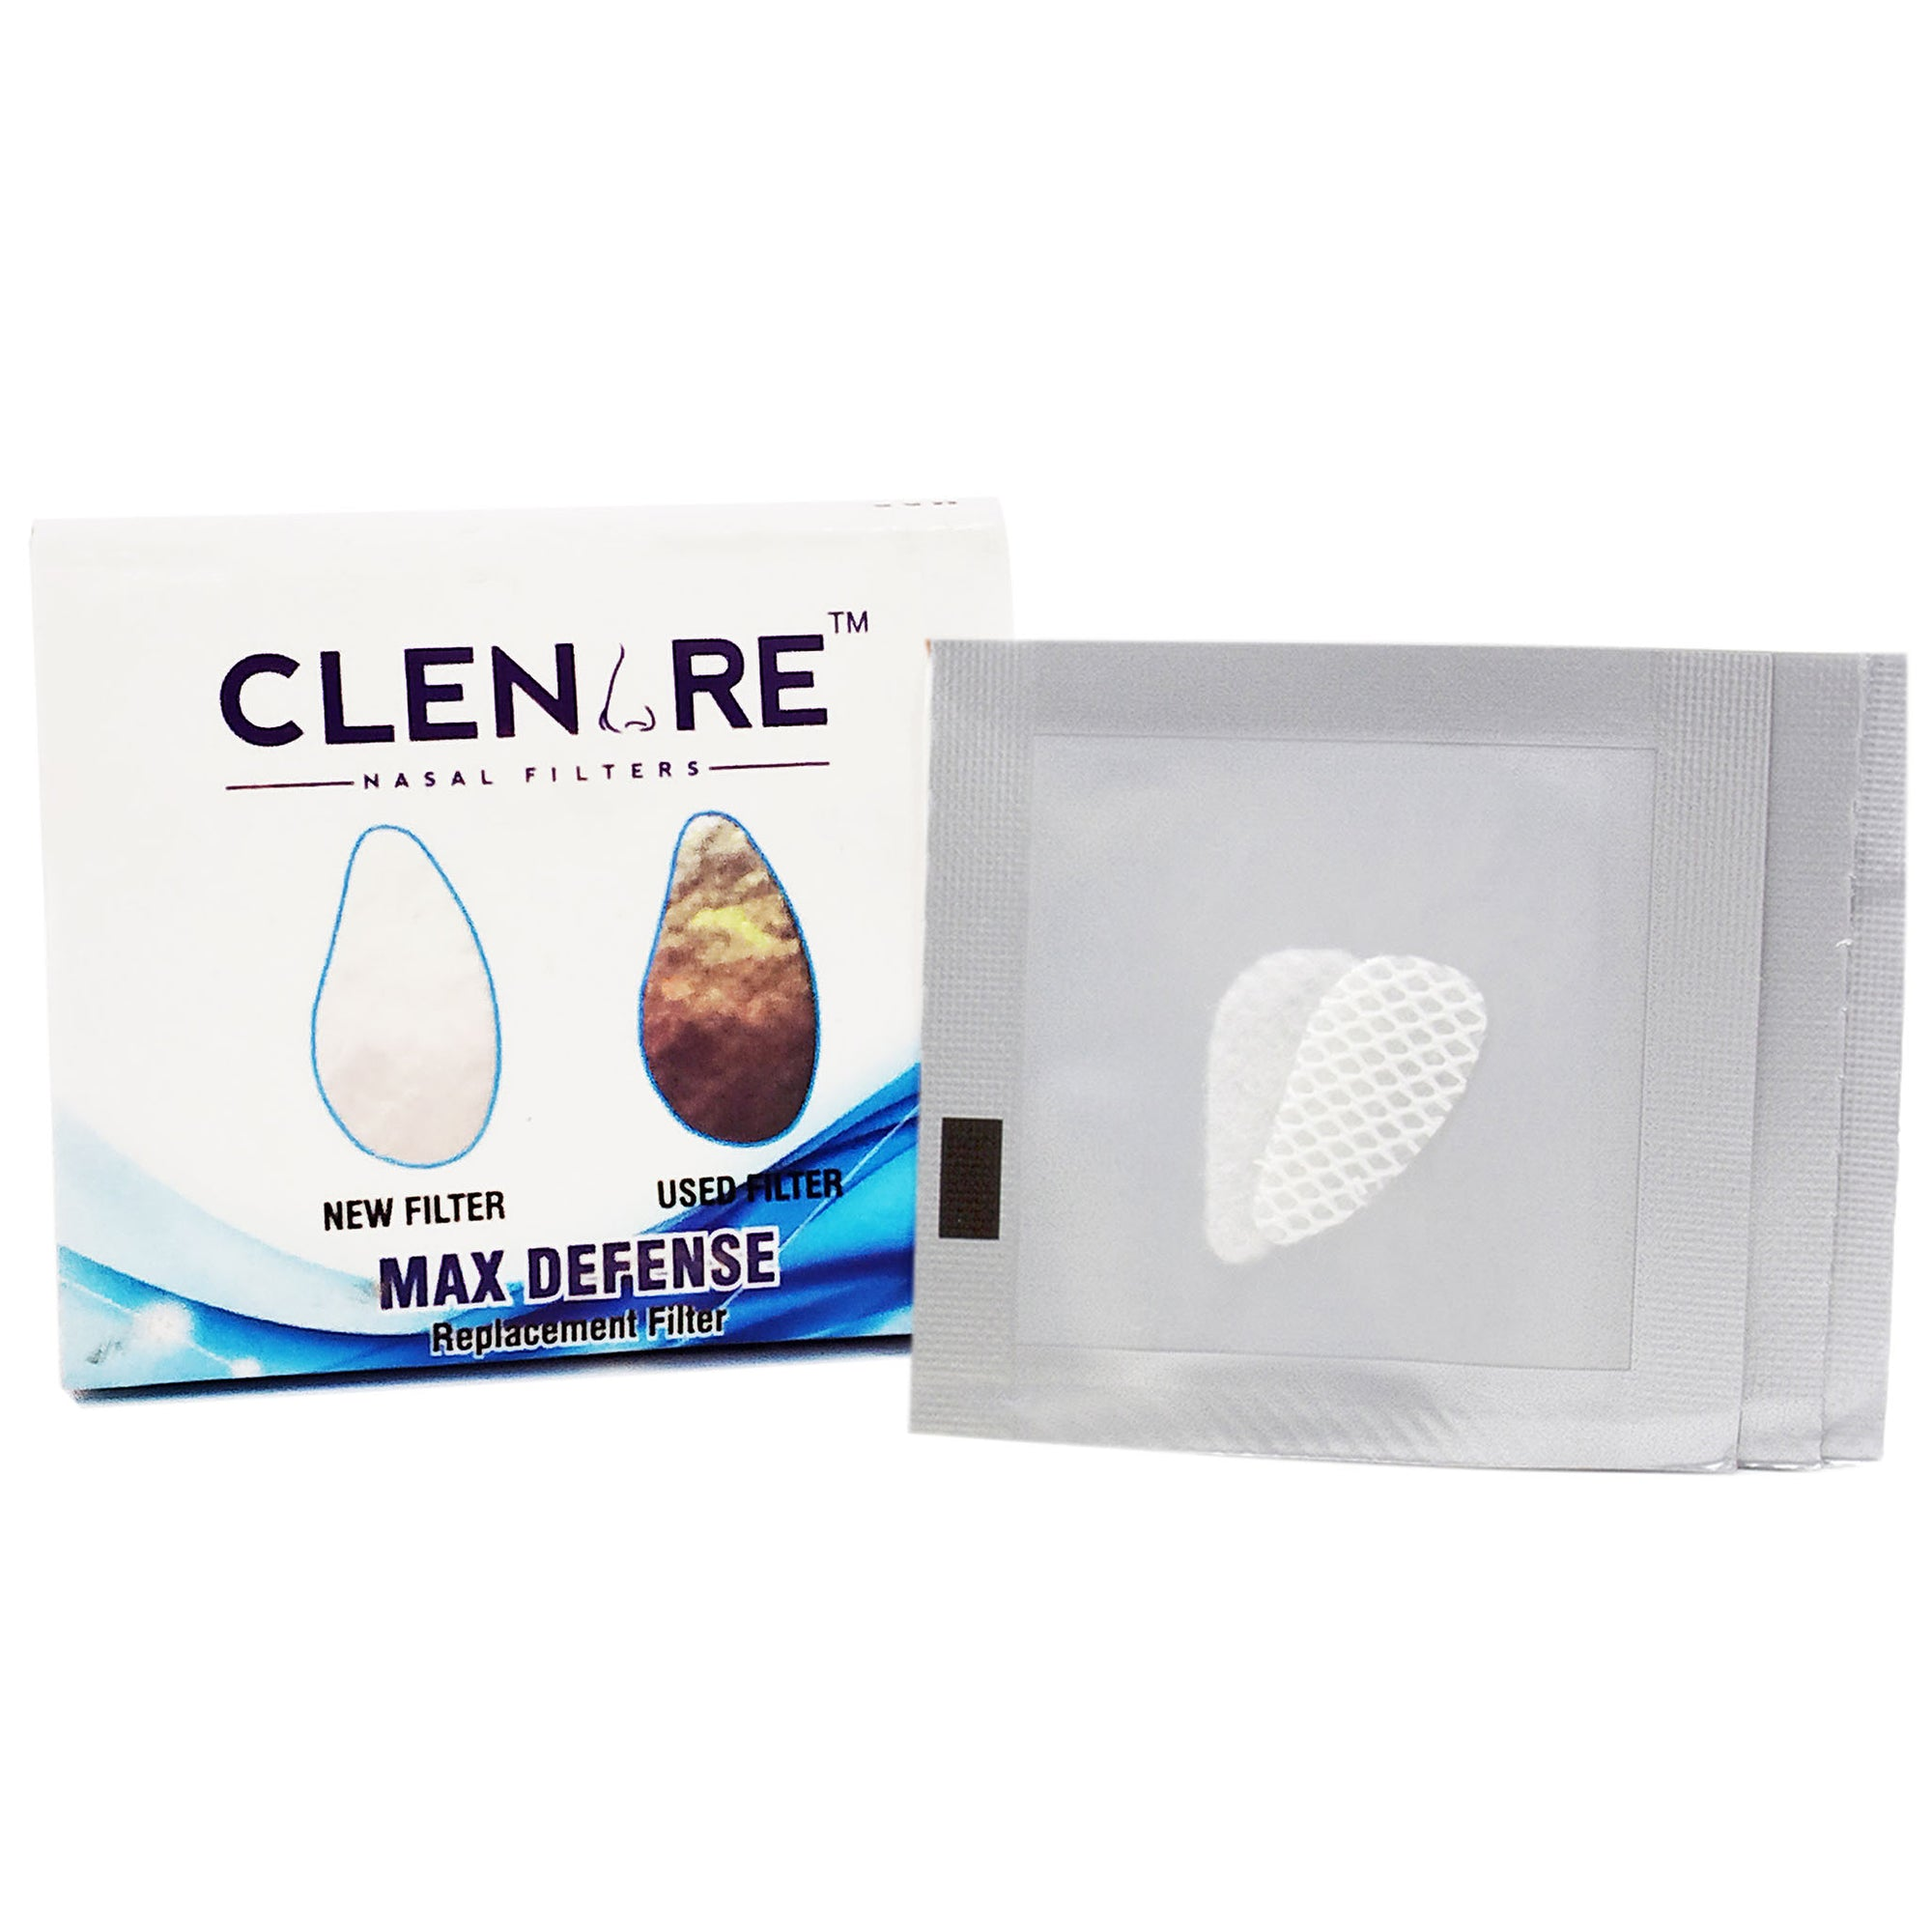 Clenare Replacement Filters - Children's Size - Clenareindia